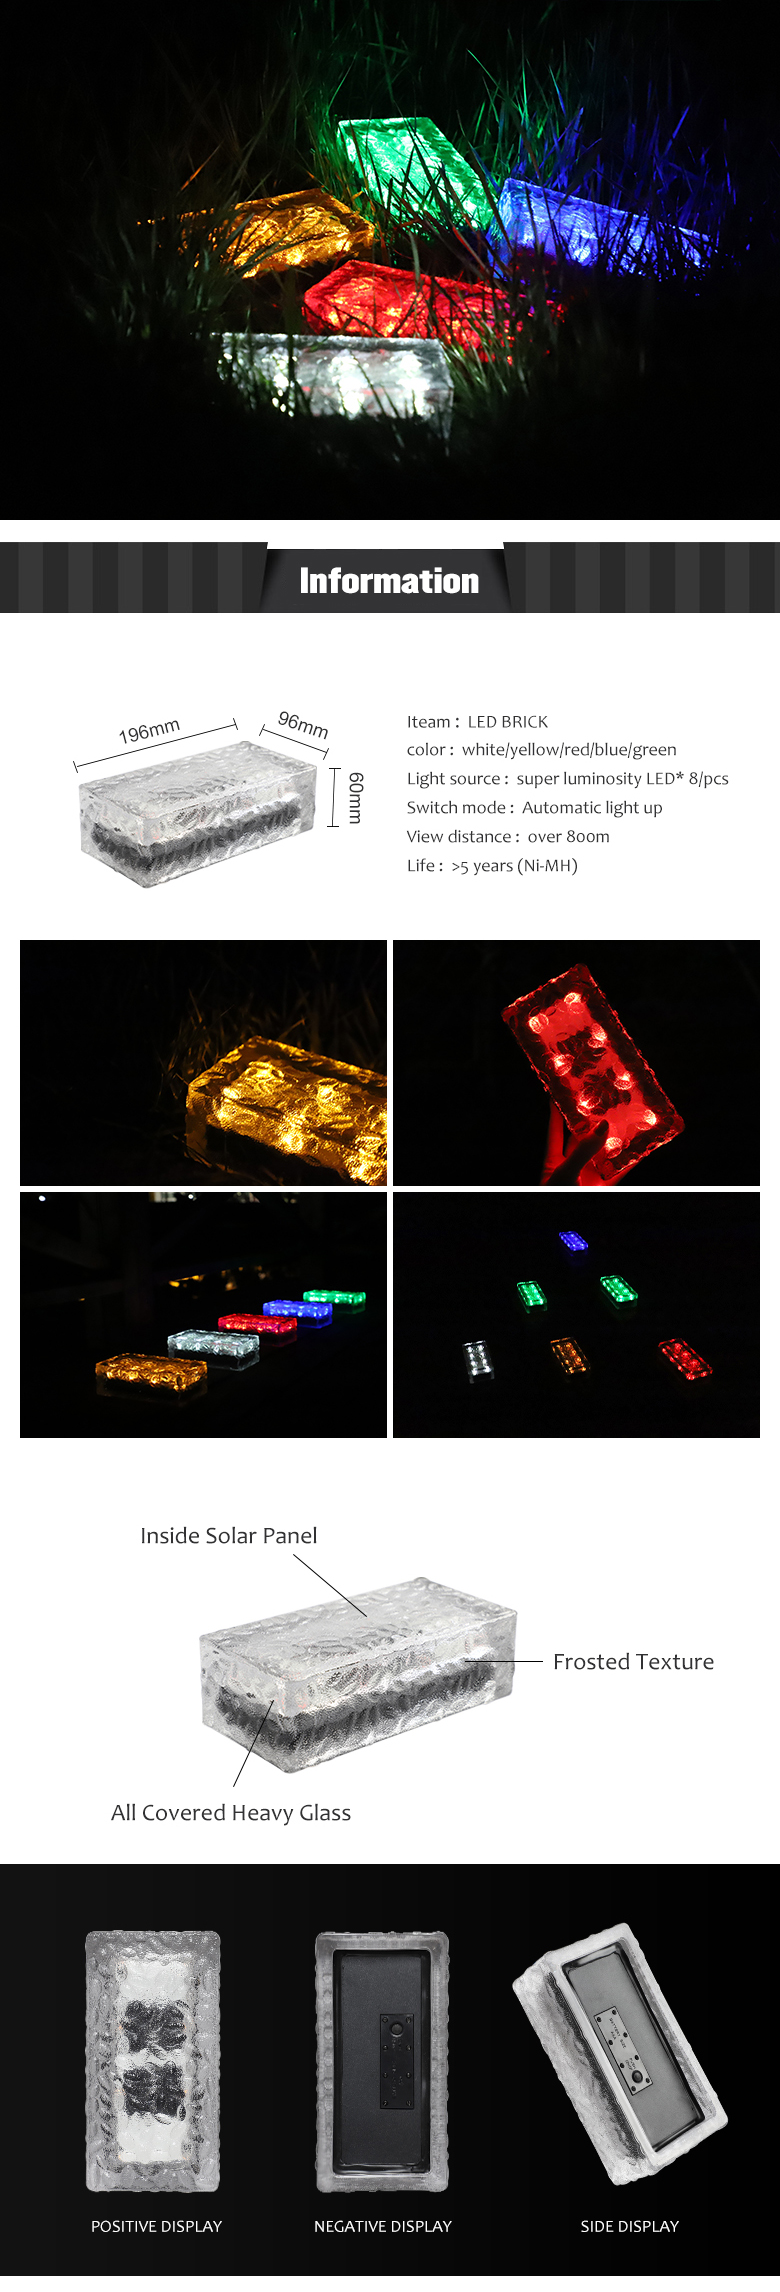 196x96x60mm hollow glass block with led lamp for indoor or outdoor decoration